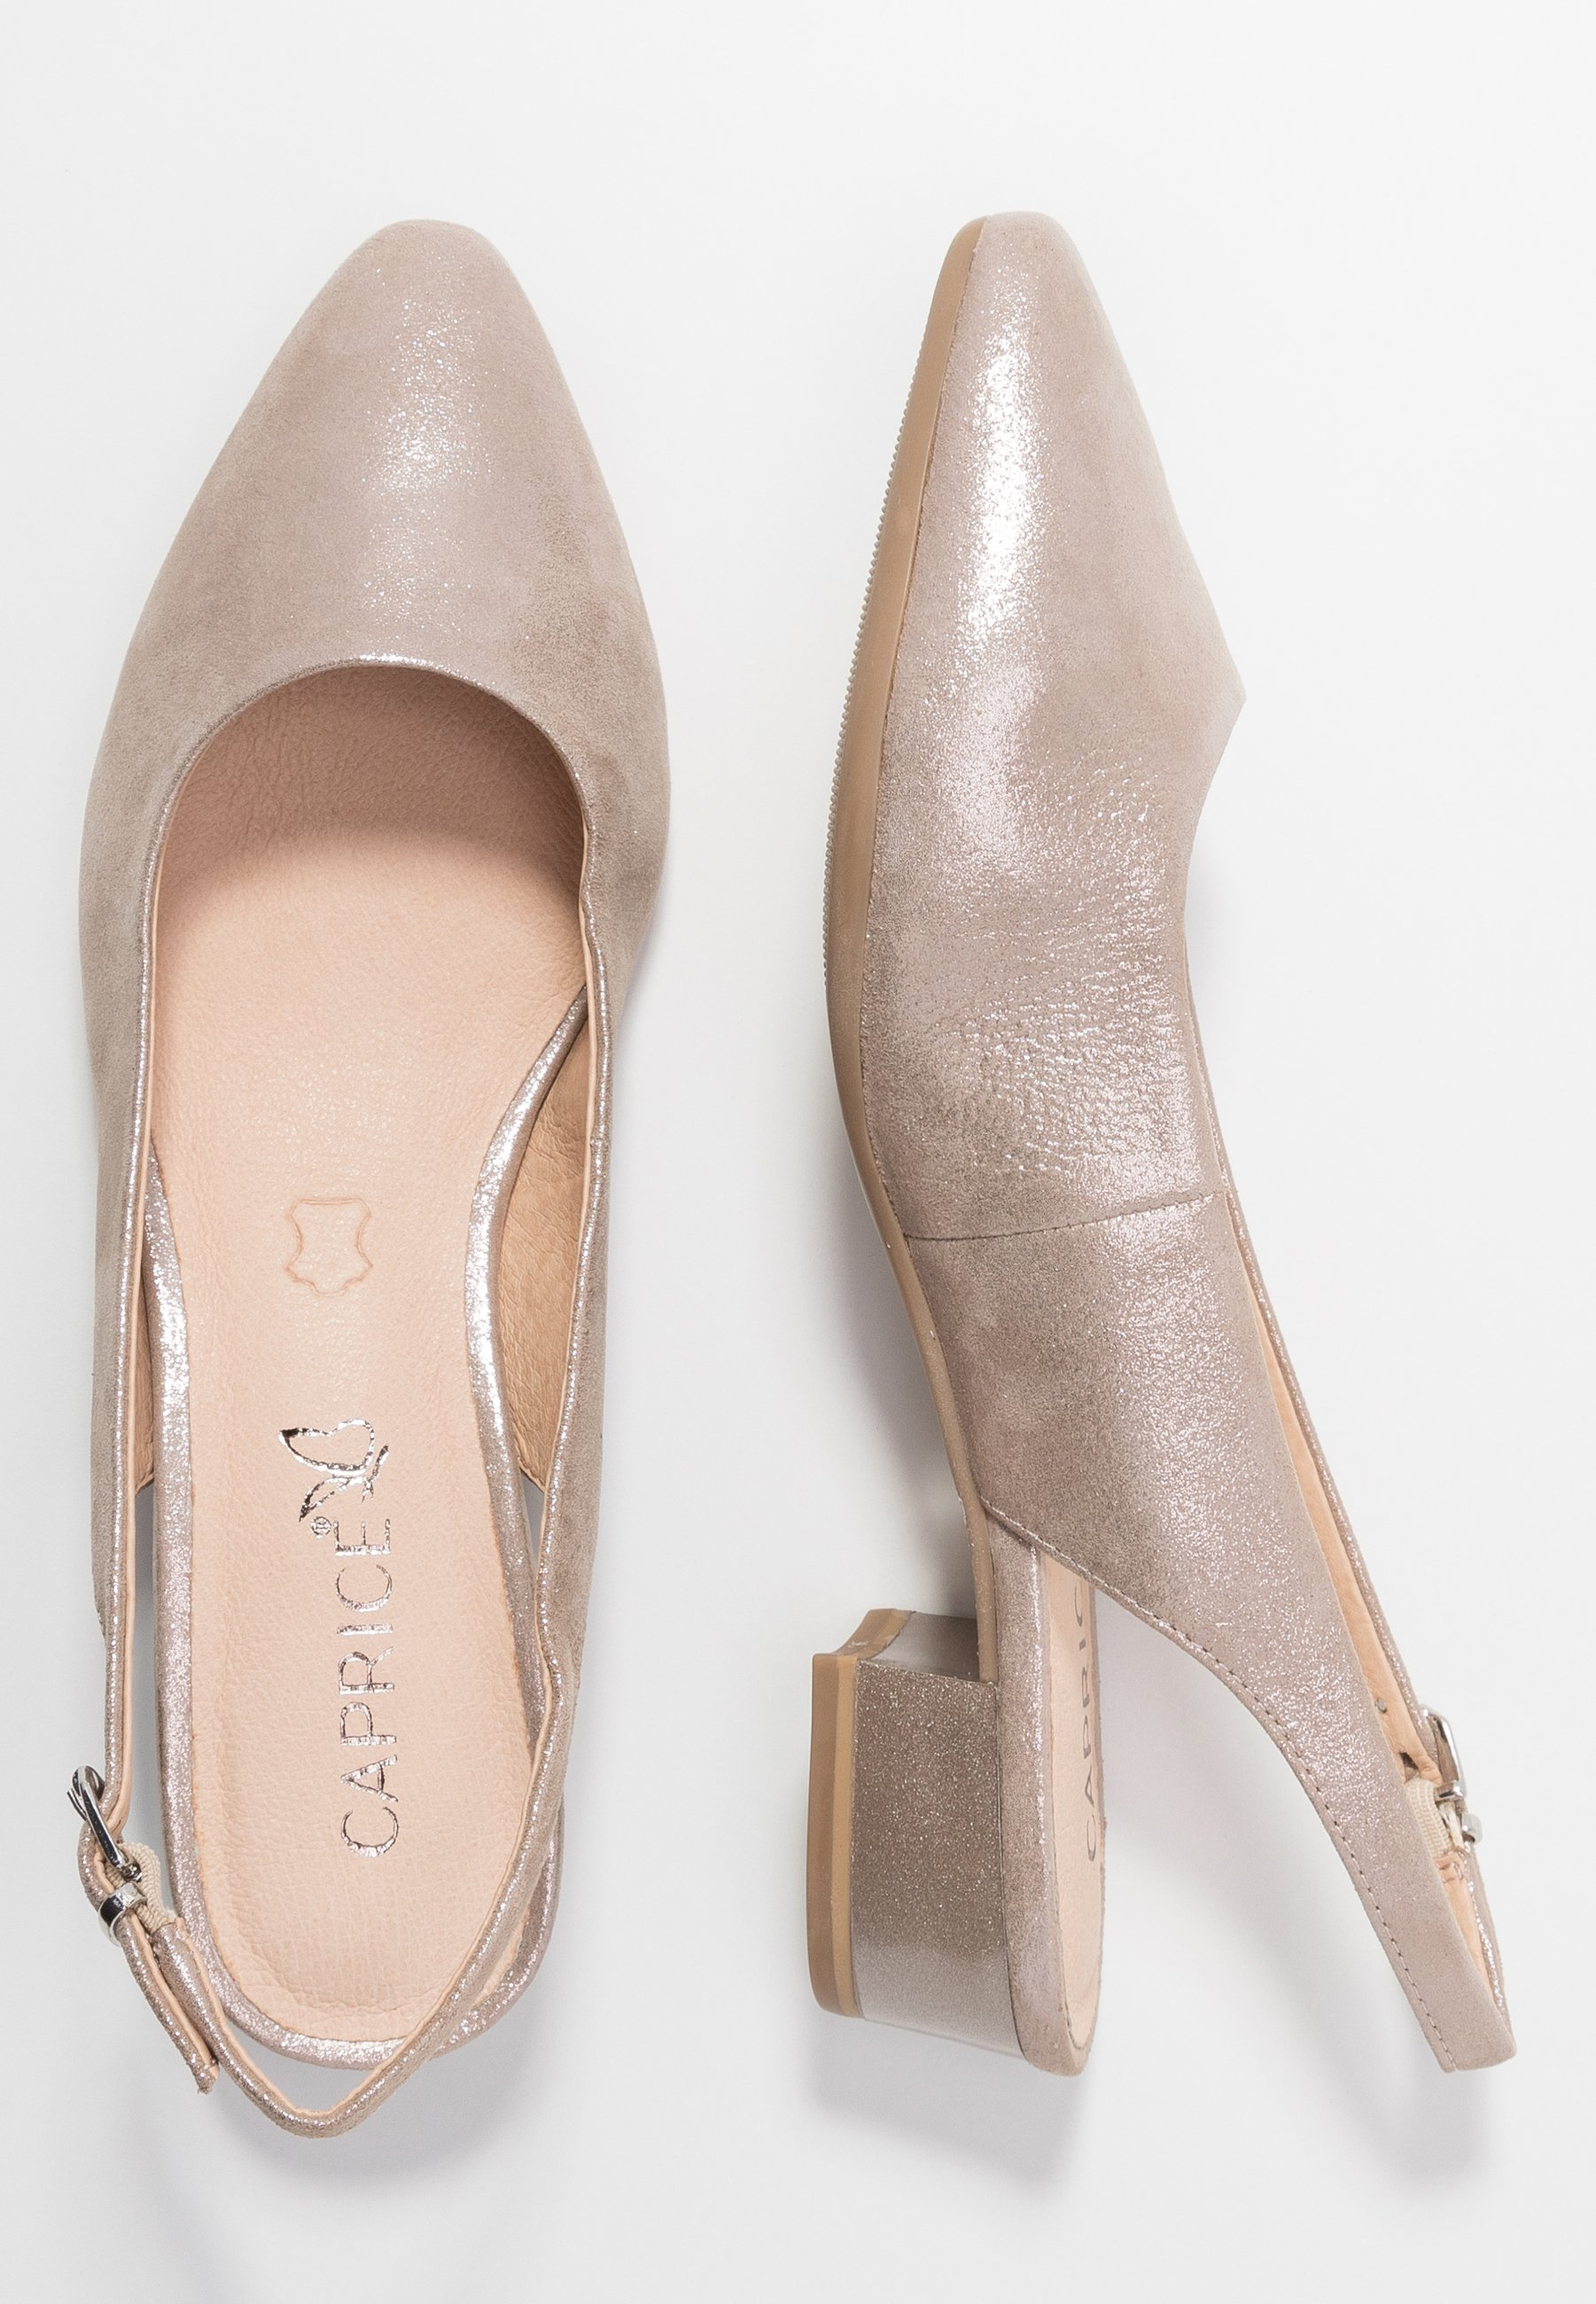 Caprice Pumps - Taupe